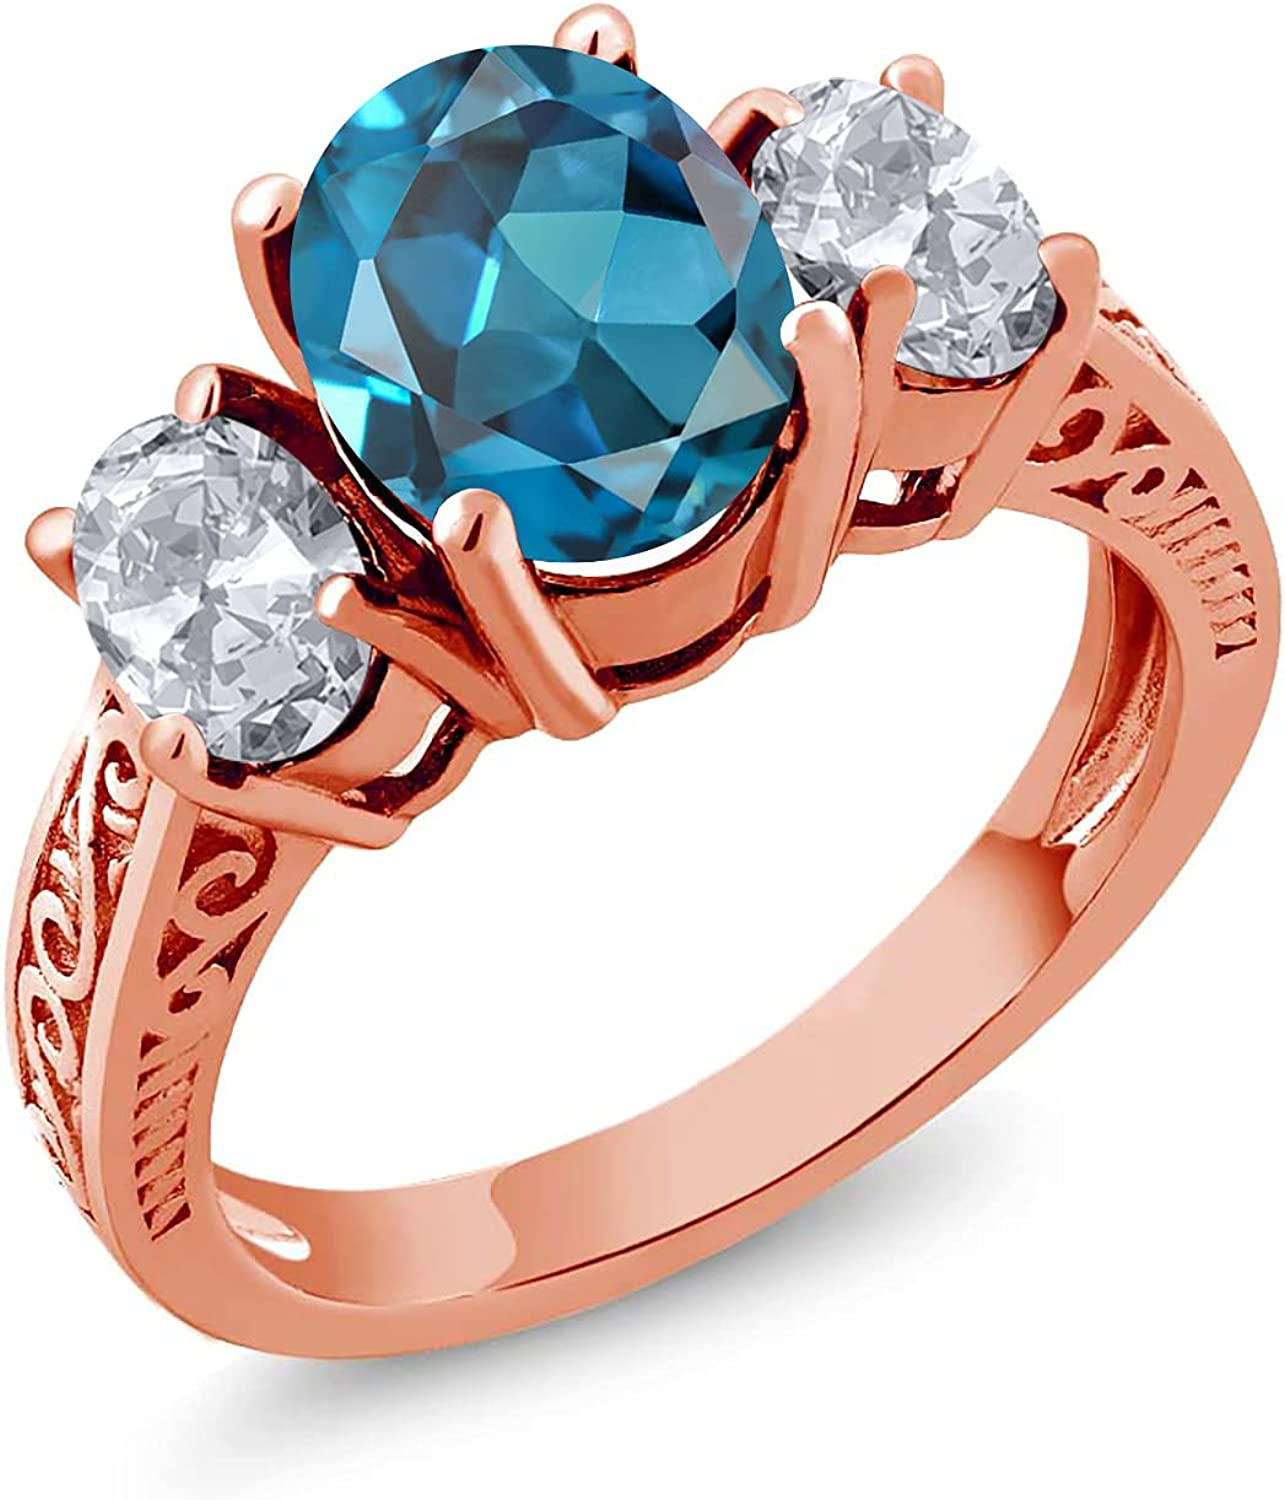 Gem Stone King 2.80 Ct Oval White Sales of SALE items from new works Ro London All items in the store Topaz 18K Blue